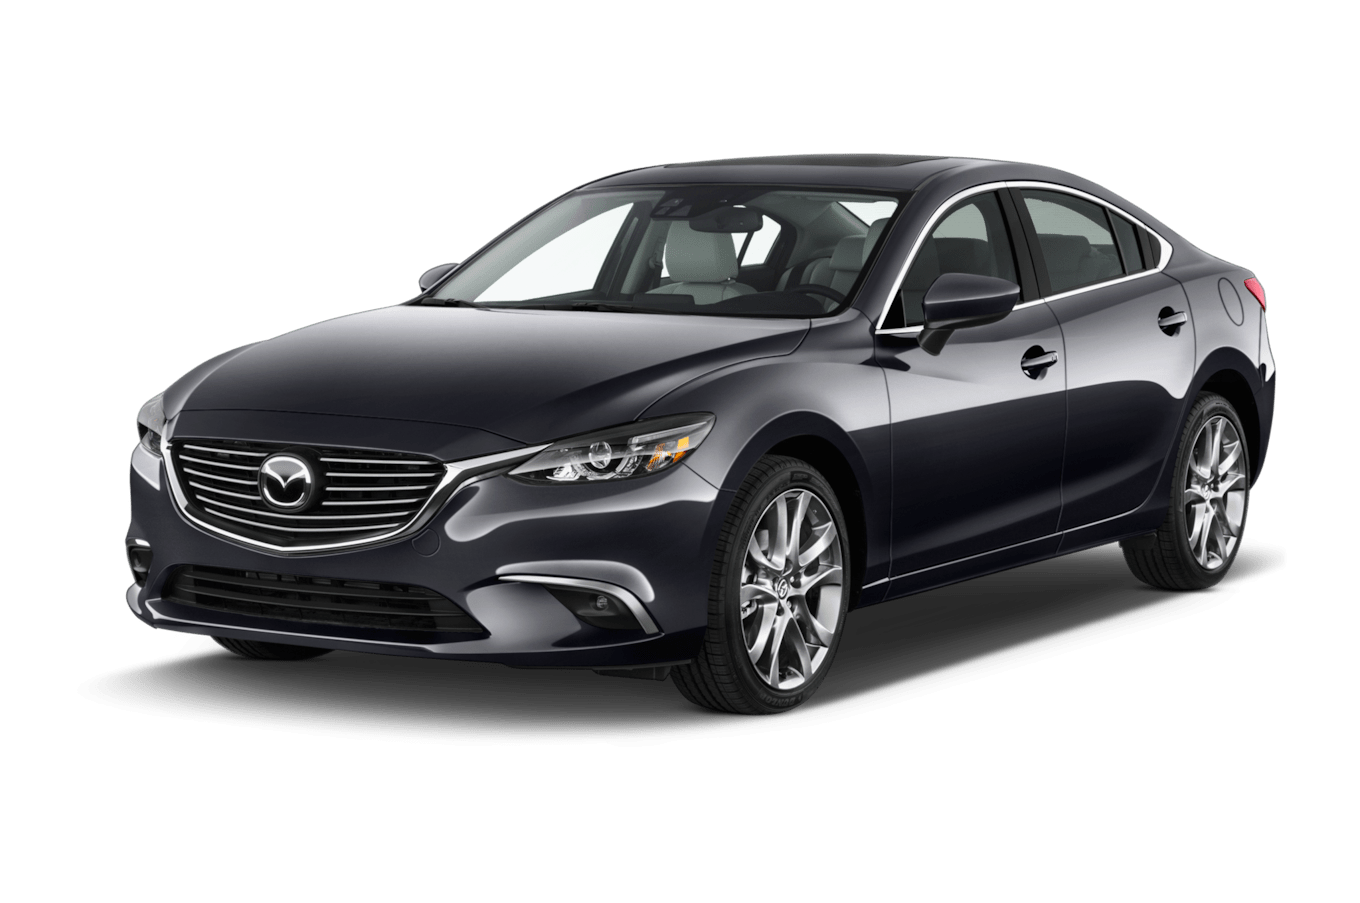 hight resolution of 2016 mazda mazda6 reviews and rating motor trend 70 94